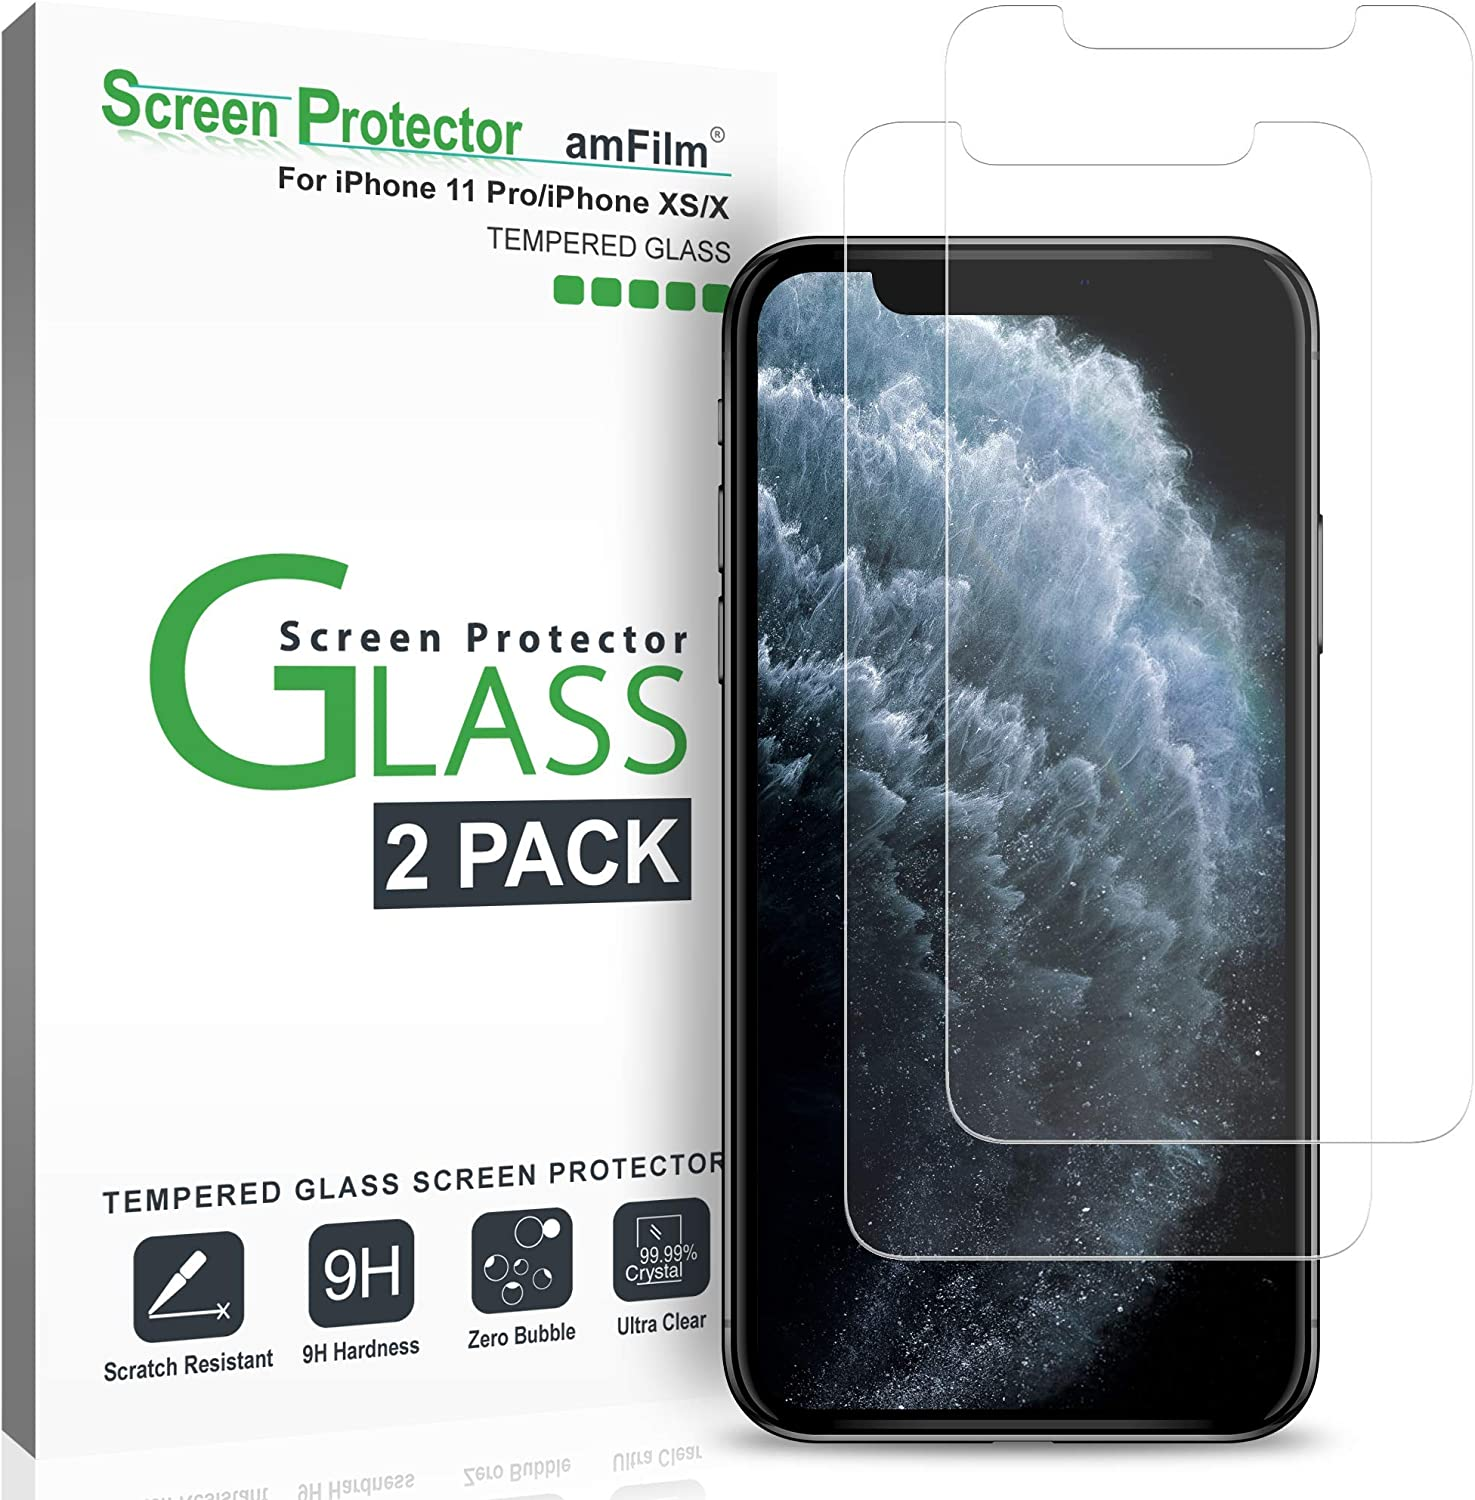 amFilm Glass Screen Protector for iPhone 11 Pro, XS, X (2 Pack) Tempered Glass